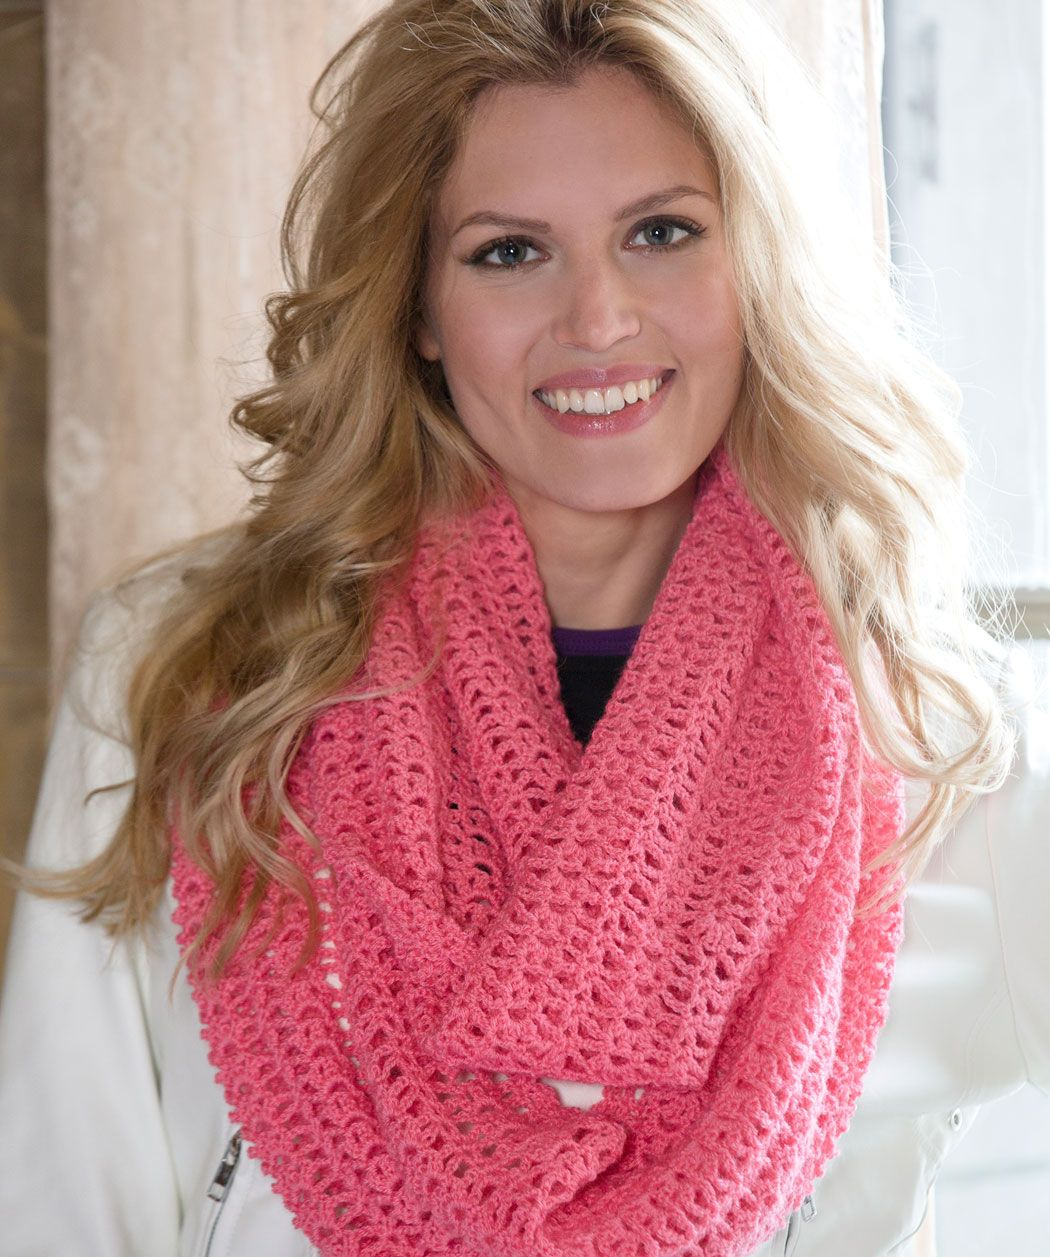 These 20 free and easy crochet scarf patterns will blow your mind an easy crochet pattern and a thin yarn create a lightweight infinity scarf suitable to wear year round wrap it twice like our fashion styled model bankloansurffo Image collections